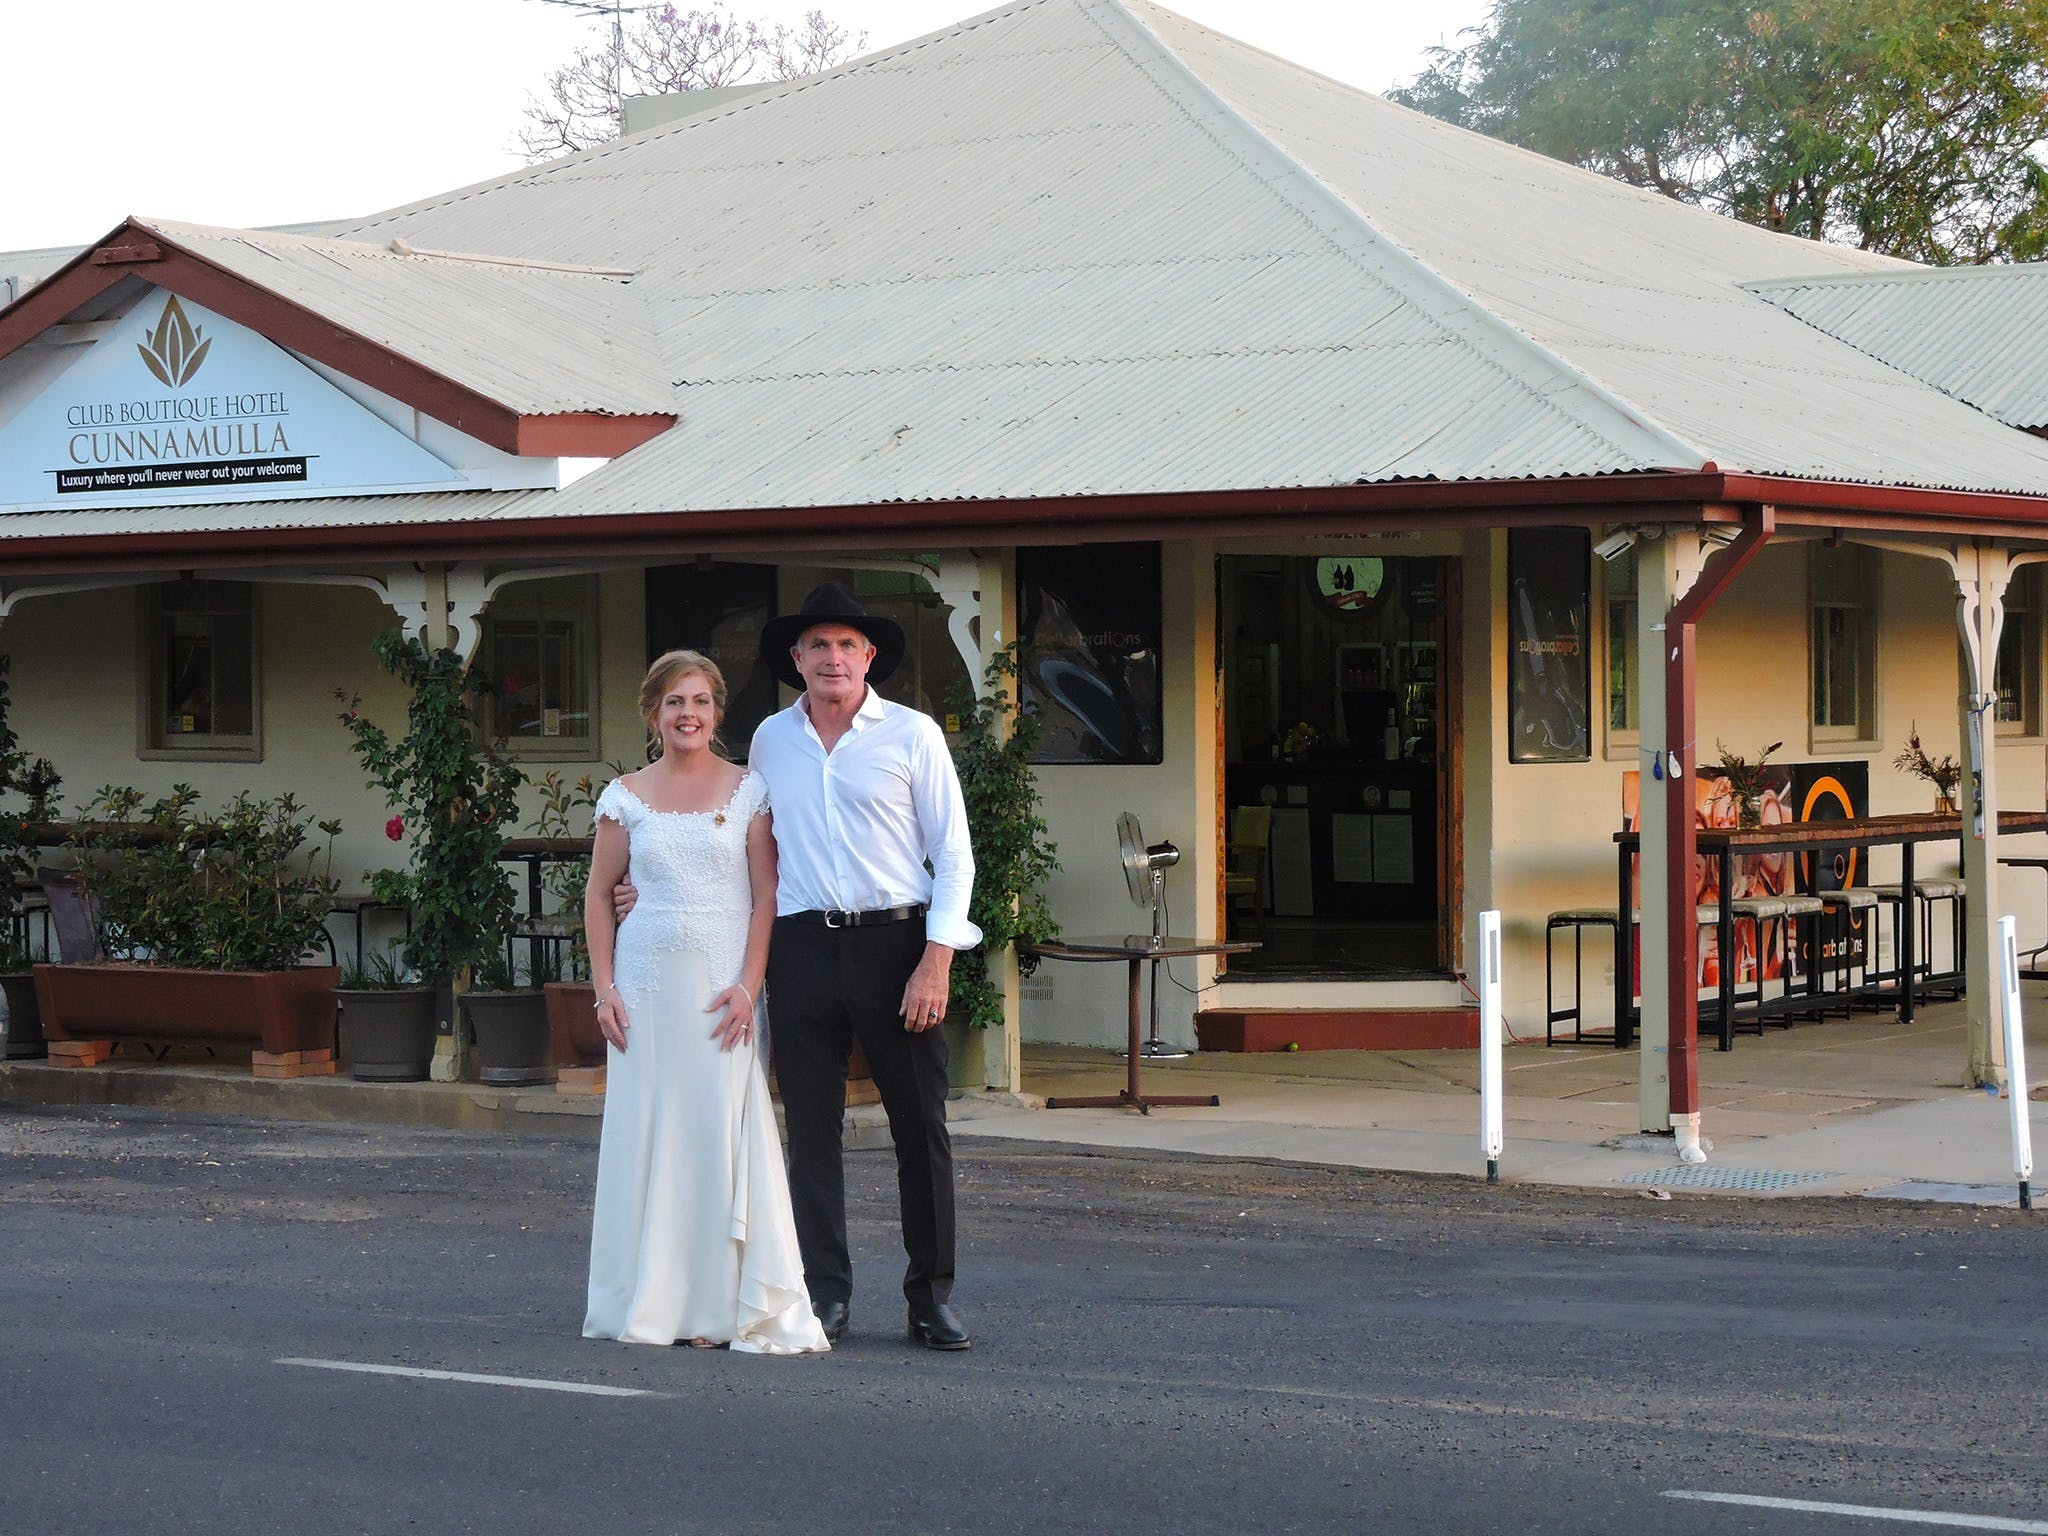 Club Boutique Hotel Cunnamulla - Accommodation Rockhampton